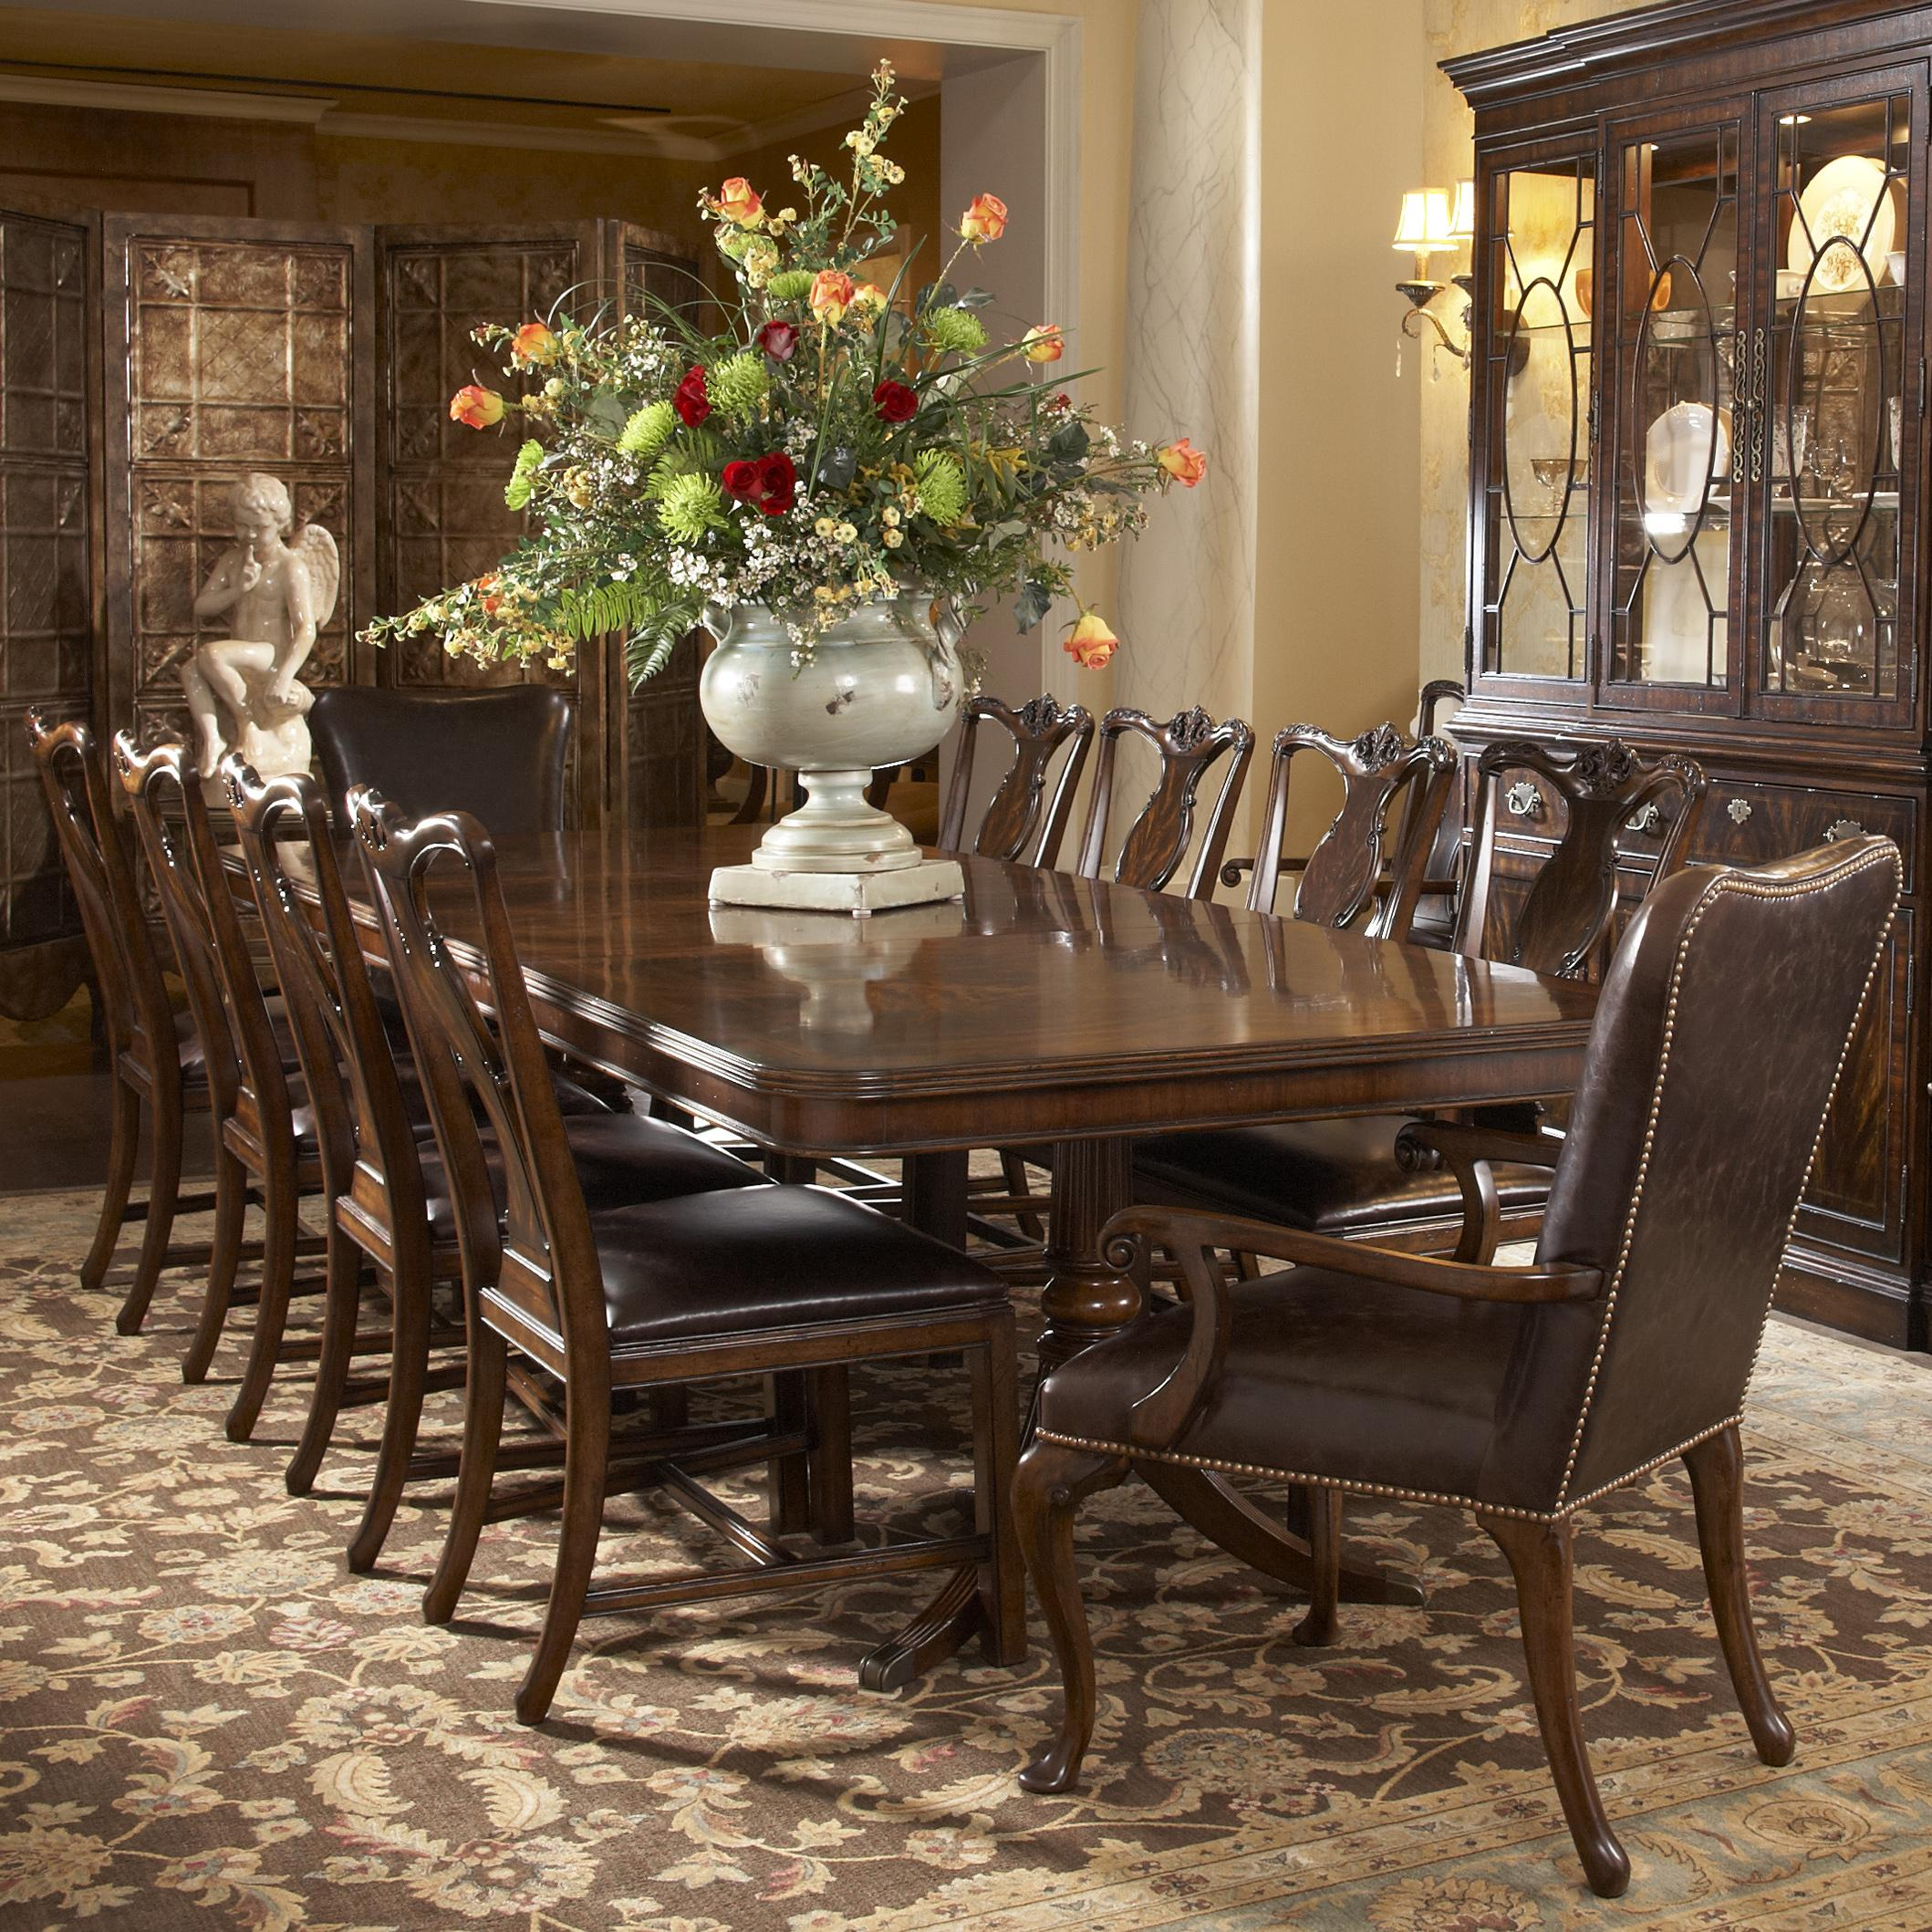 11 Piece Double Pedestal Dining Table And Splat Back Side Chair With Leather Upholstered Arm Chairs